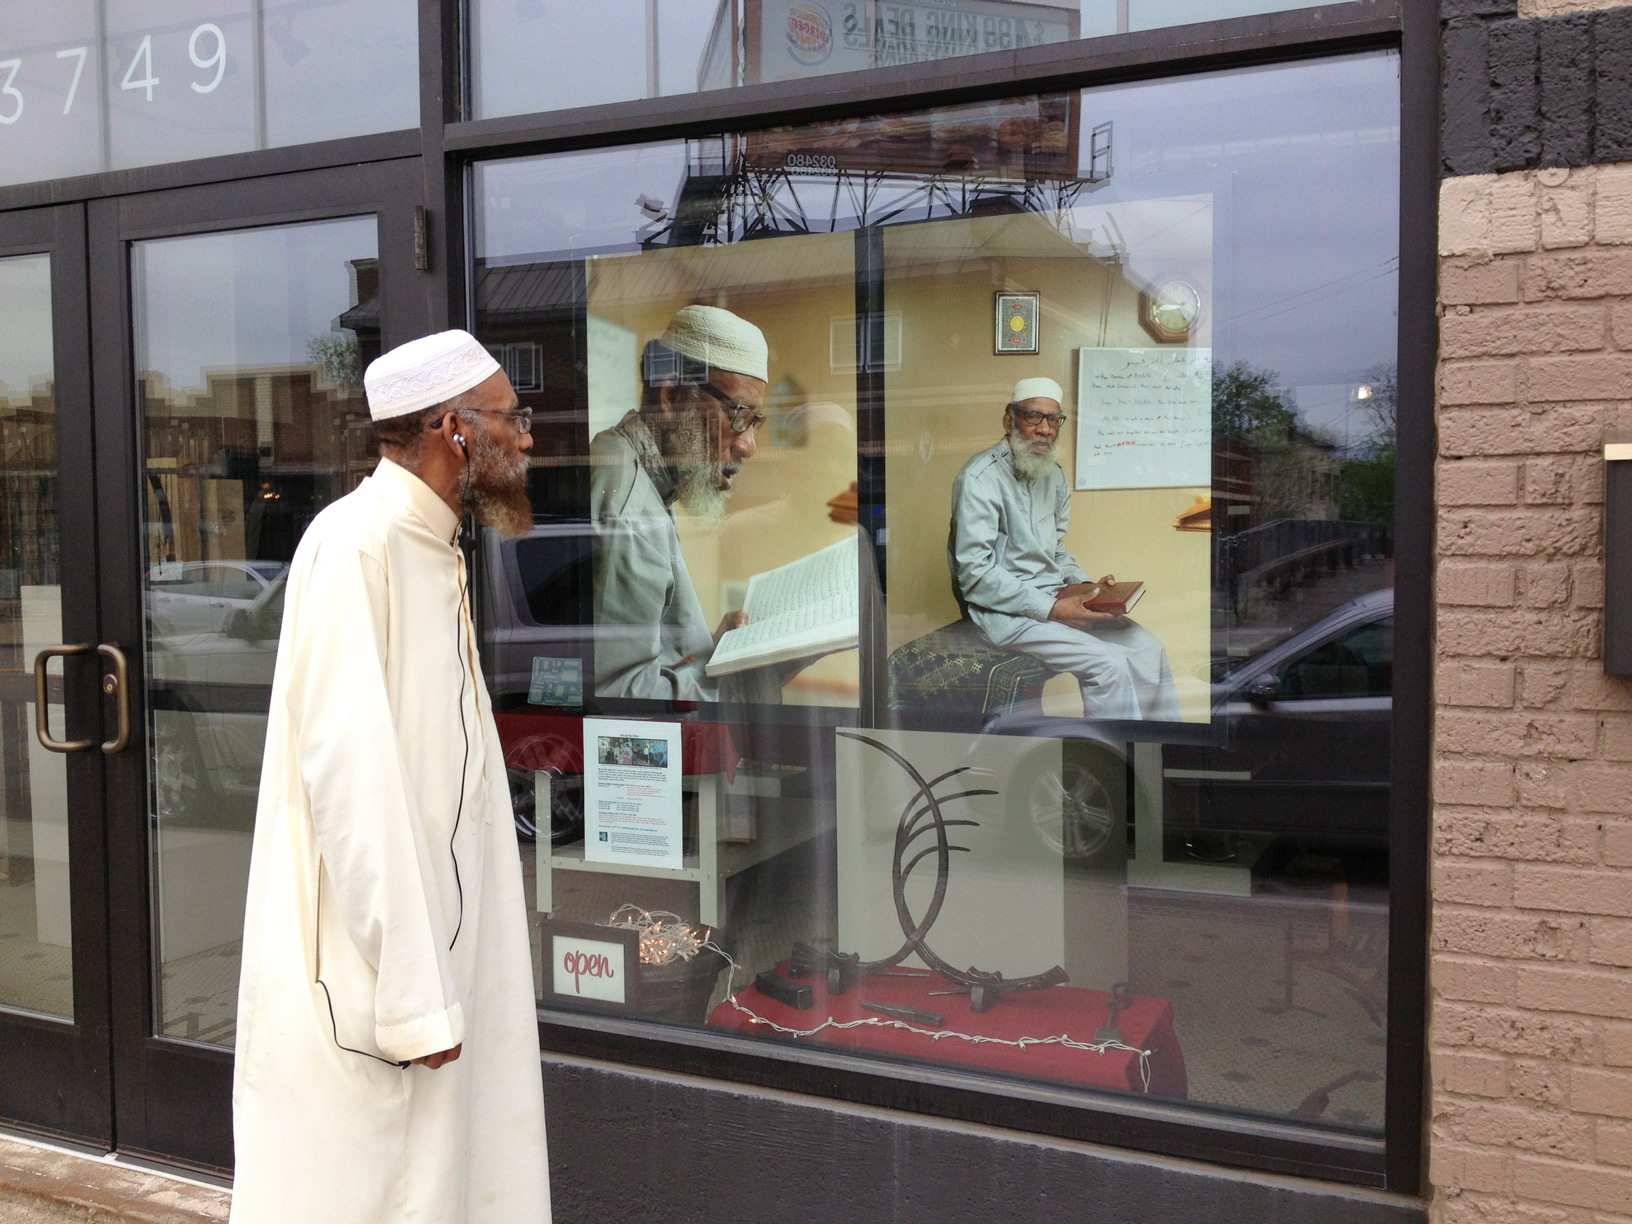 A man looks at photos of himself displayed in the window of a business for a public art display